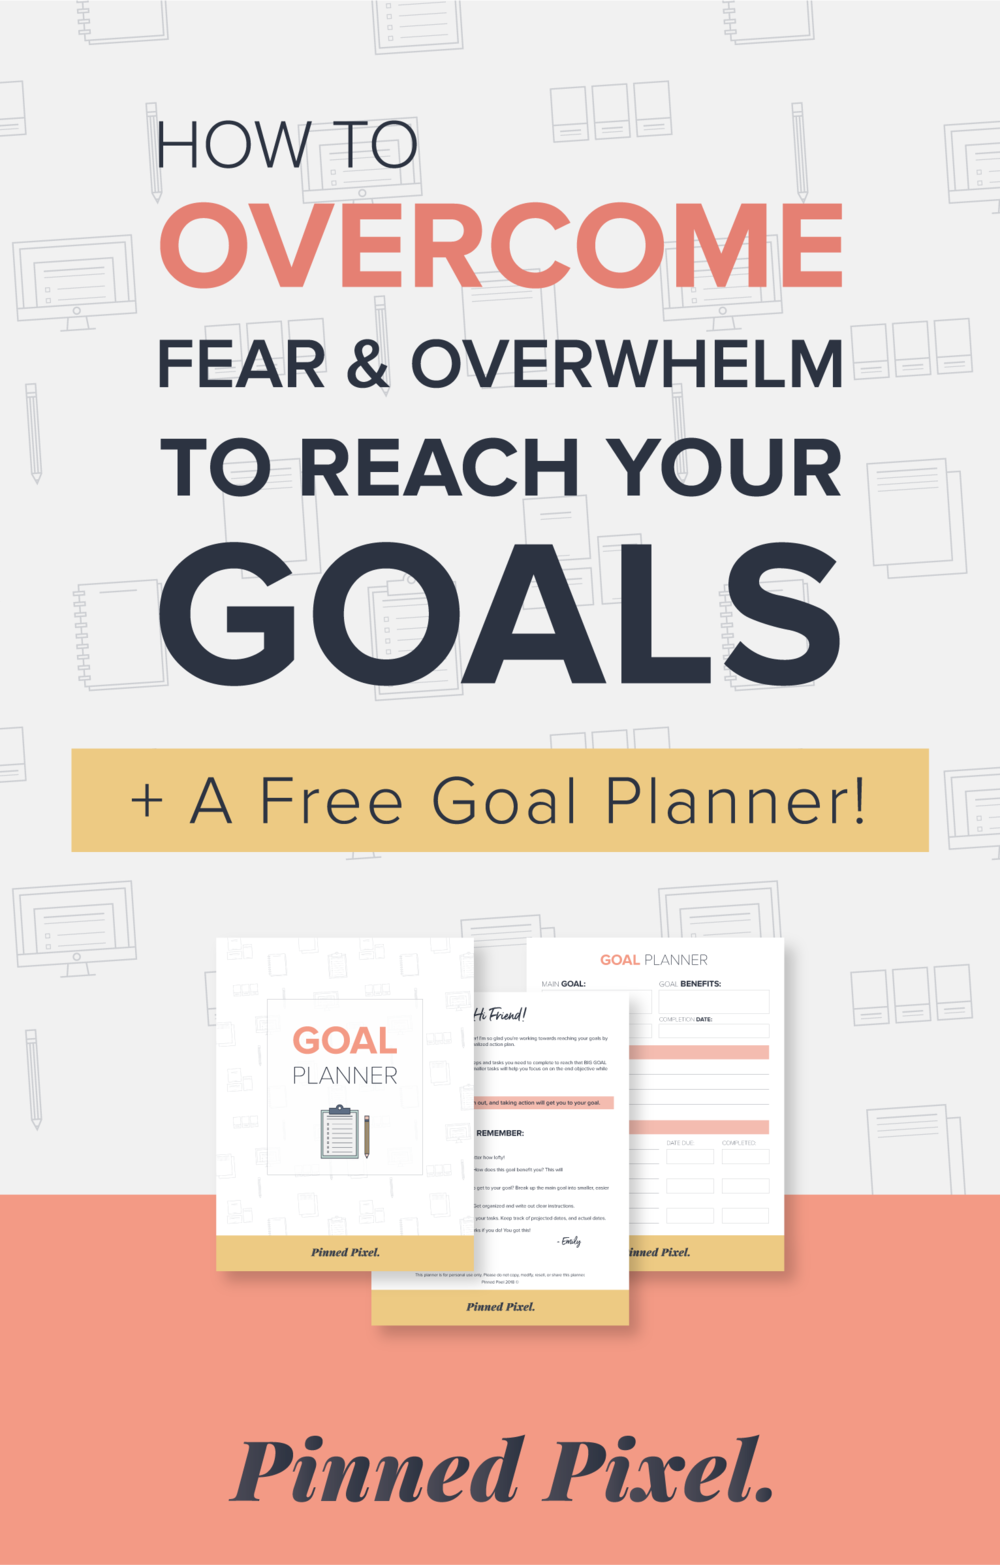 How To Overcome Fear And Overwhelm To Reach Your Goals + FREE Goal Planner! - Pinned Pixel